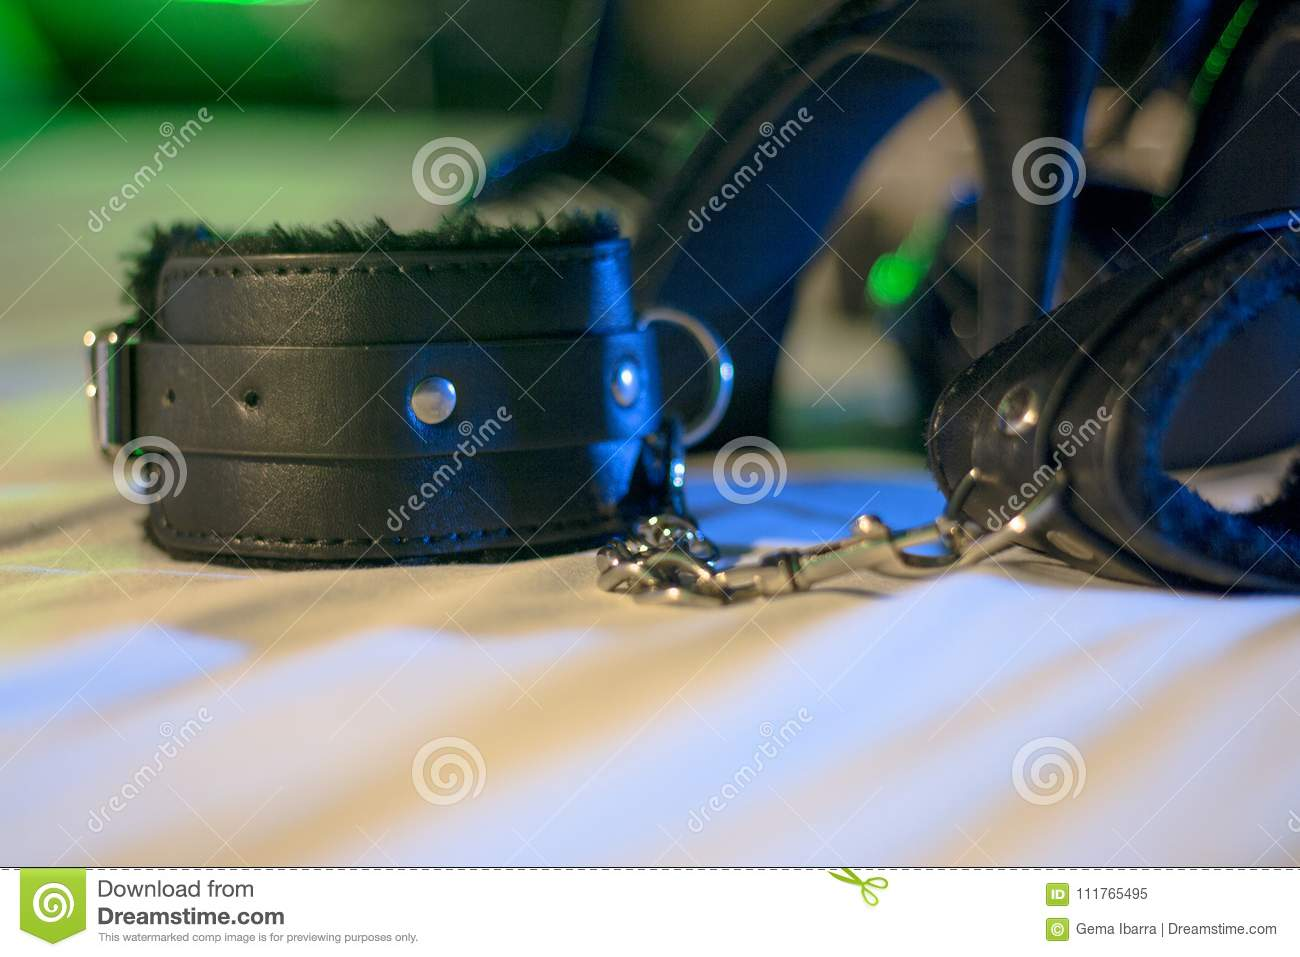 Handcuffs for erotic games. Submission